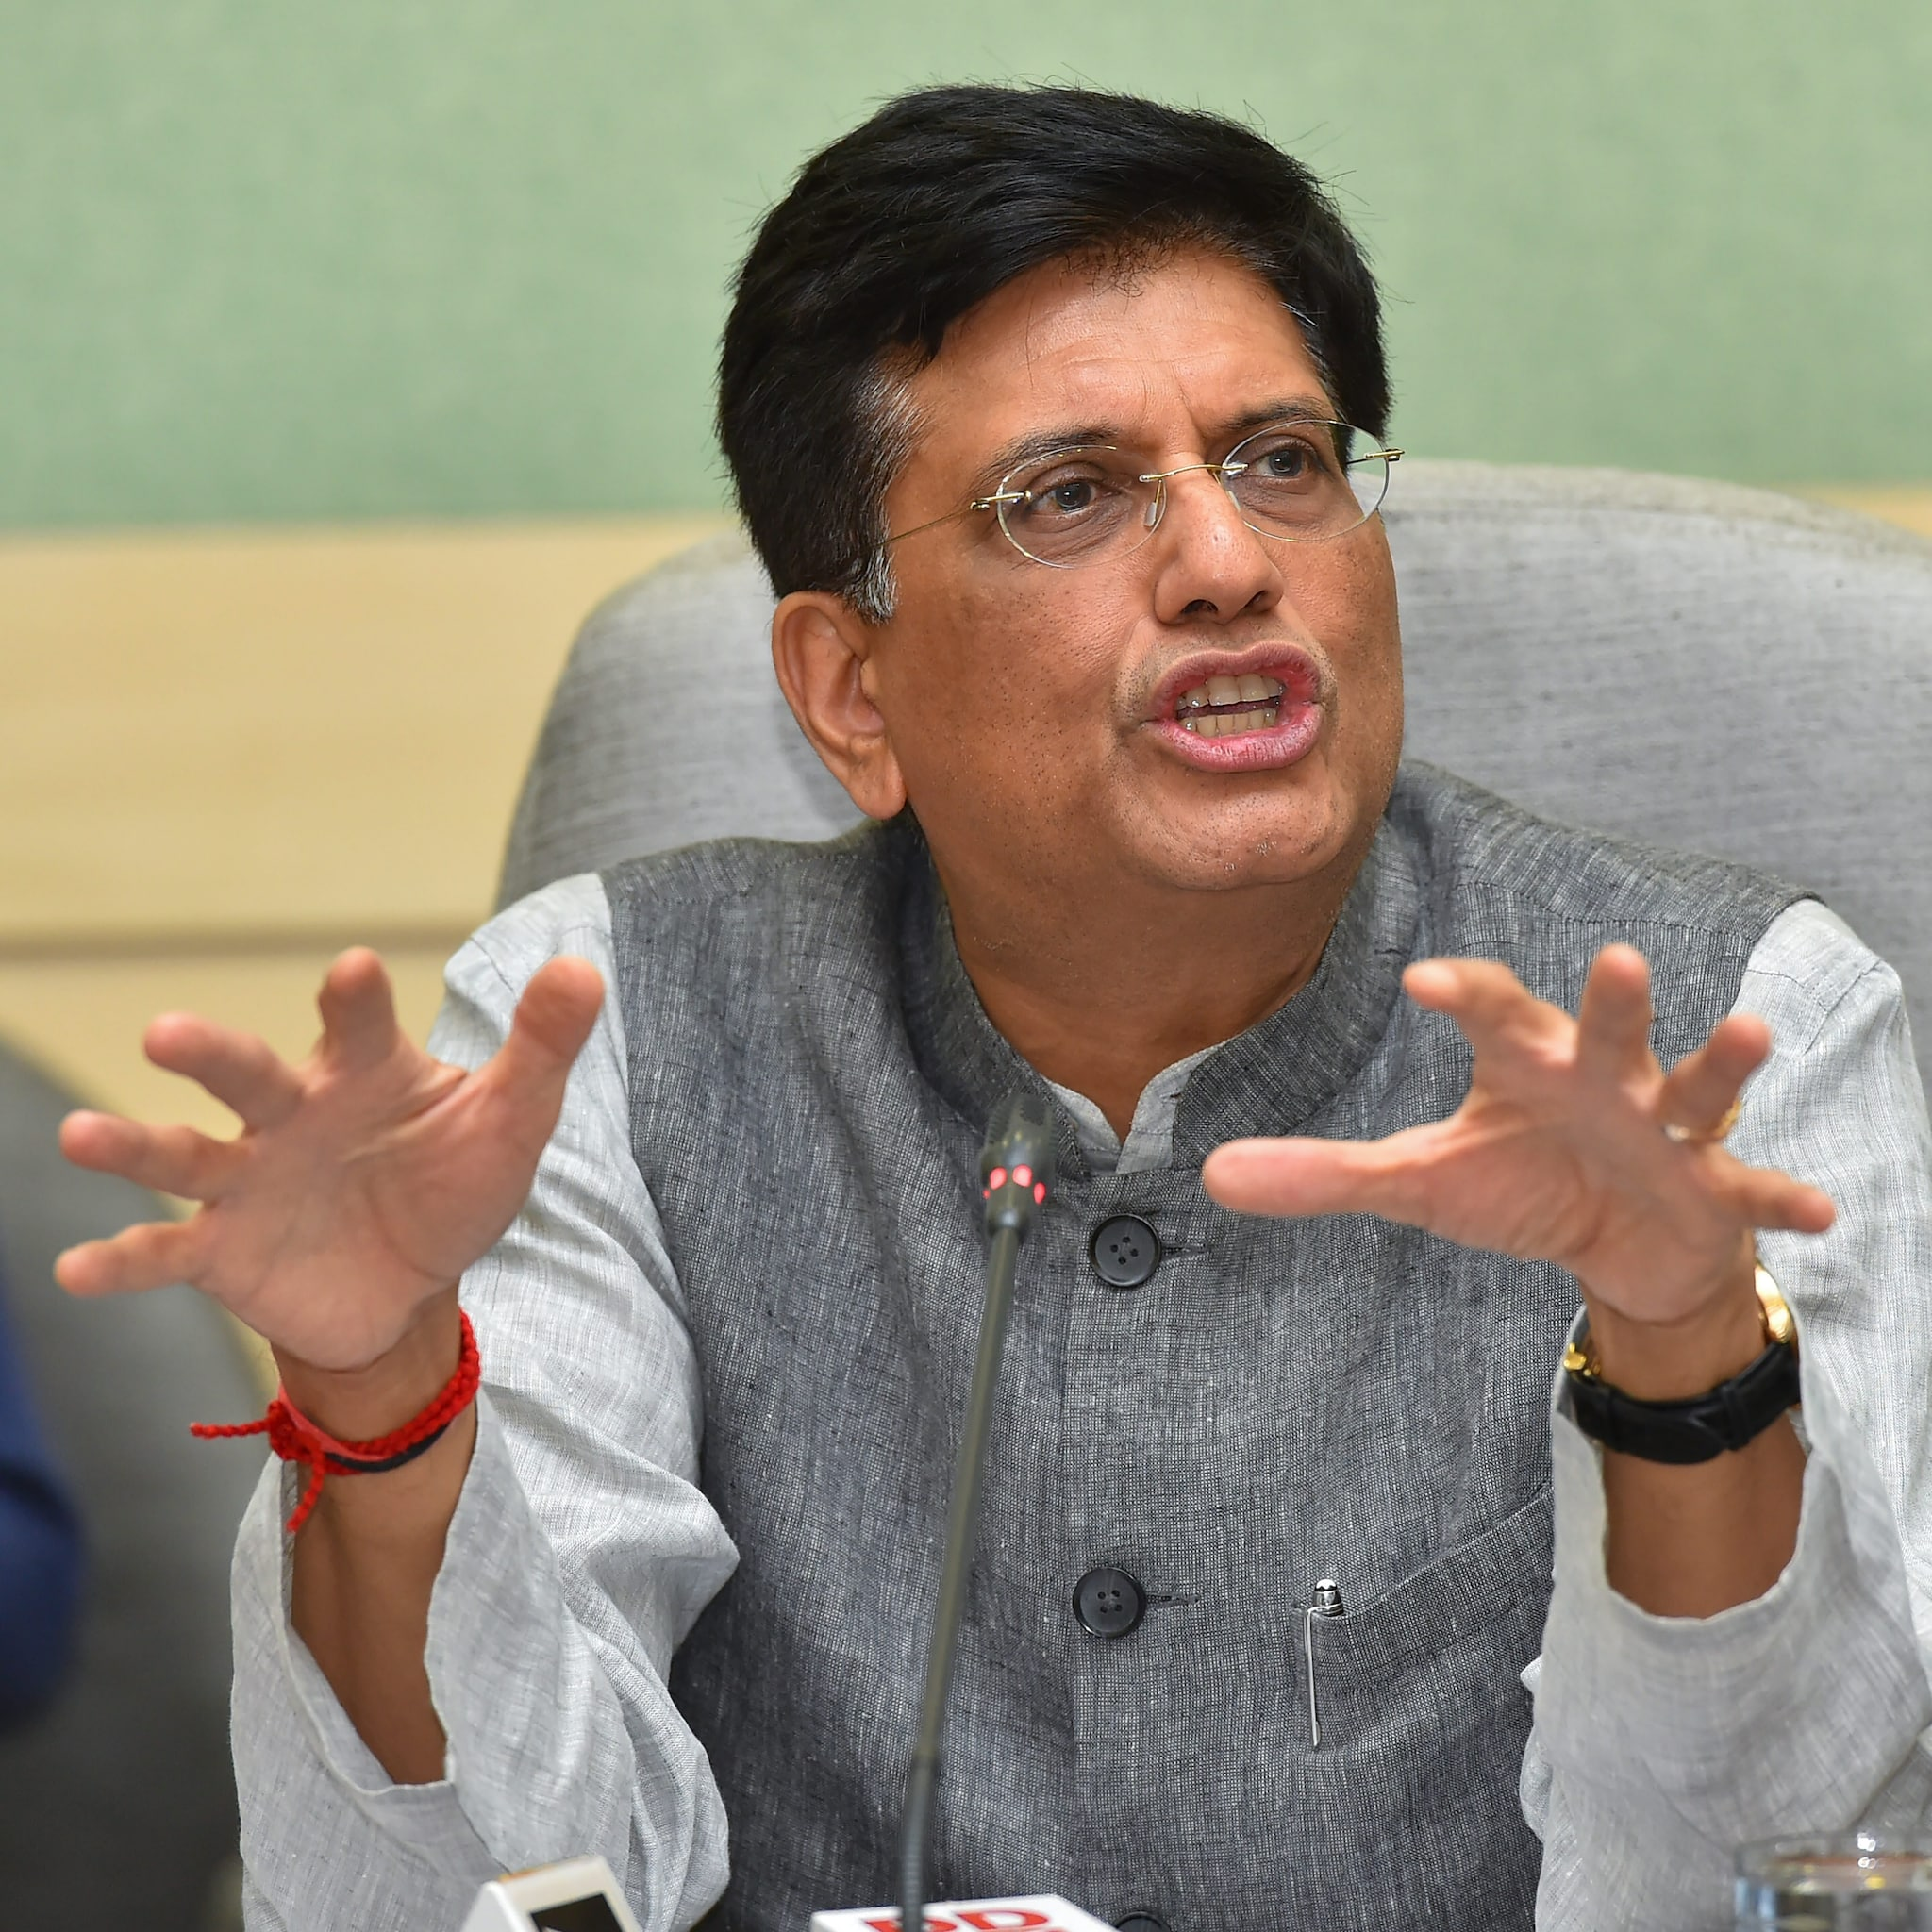 7. Piyush Goyal On Local Sourcing Norms: India will be easing mandatory local sourcing norms for FDI in single-brand retail trading in the next few weeks, commerce and industry minister Piyush Goyal said.